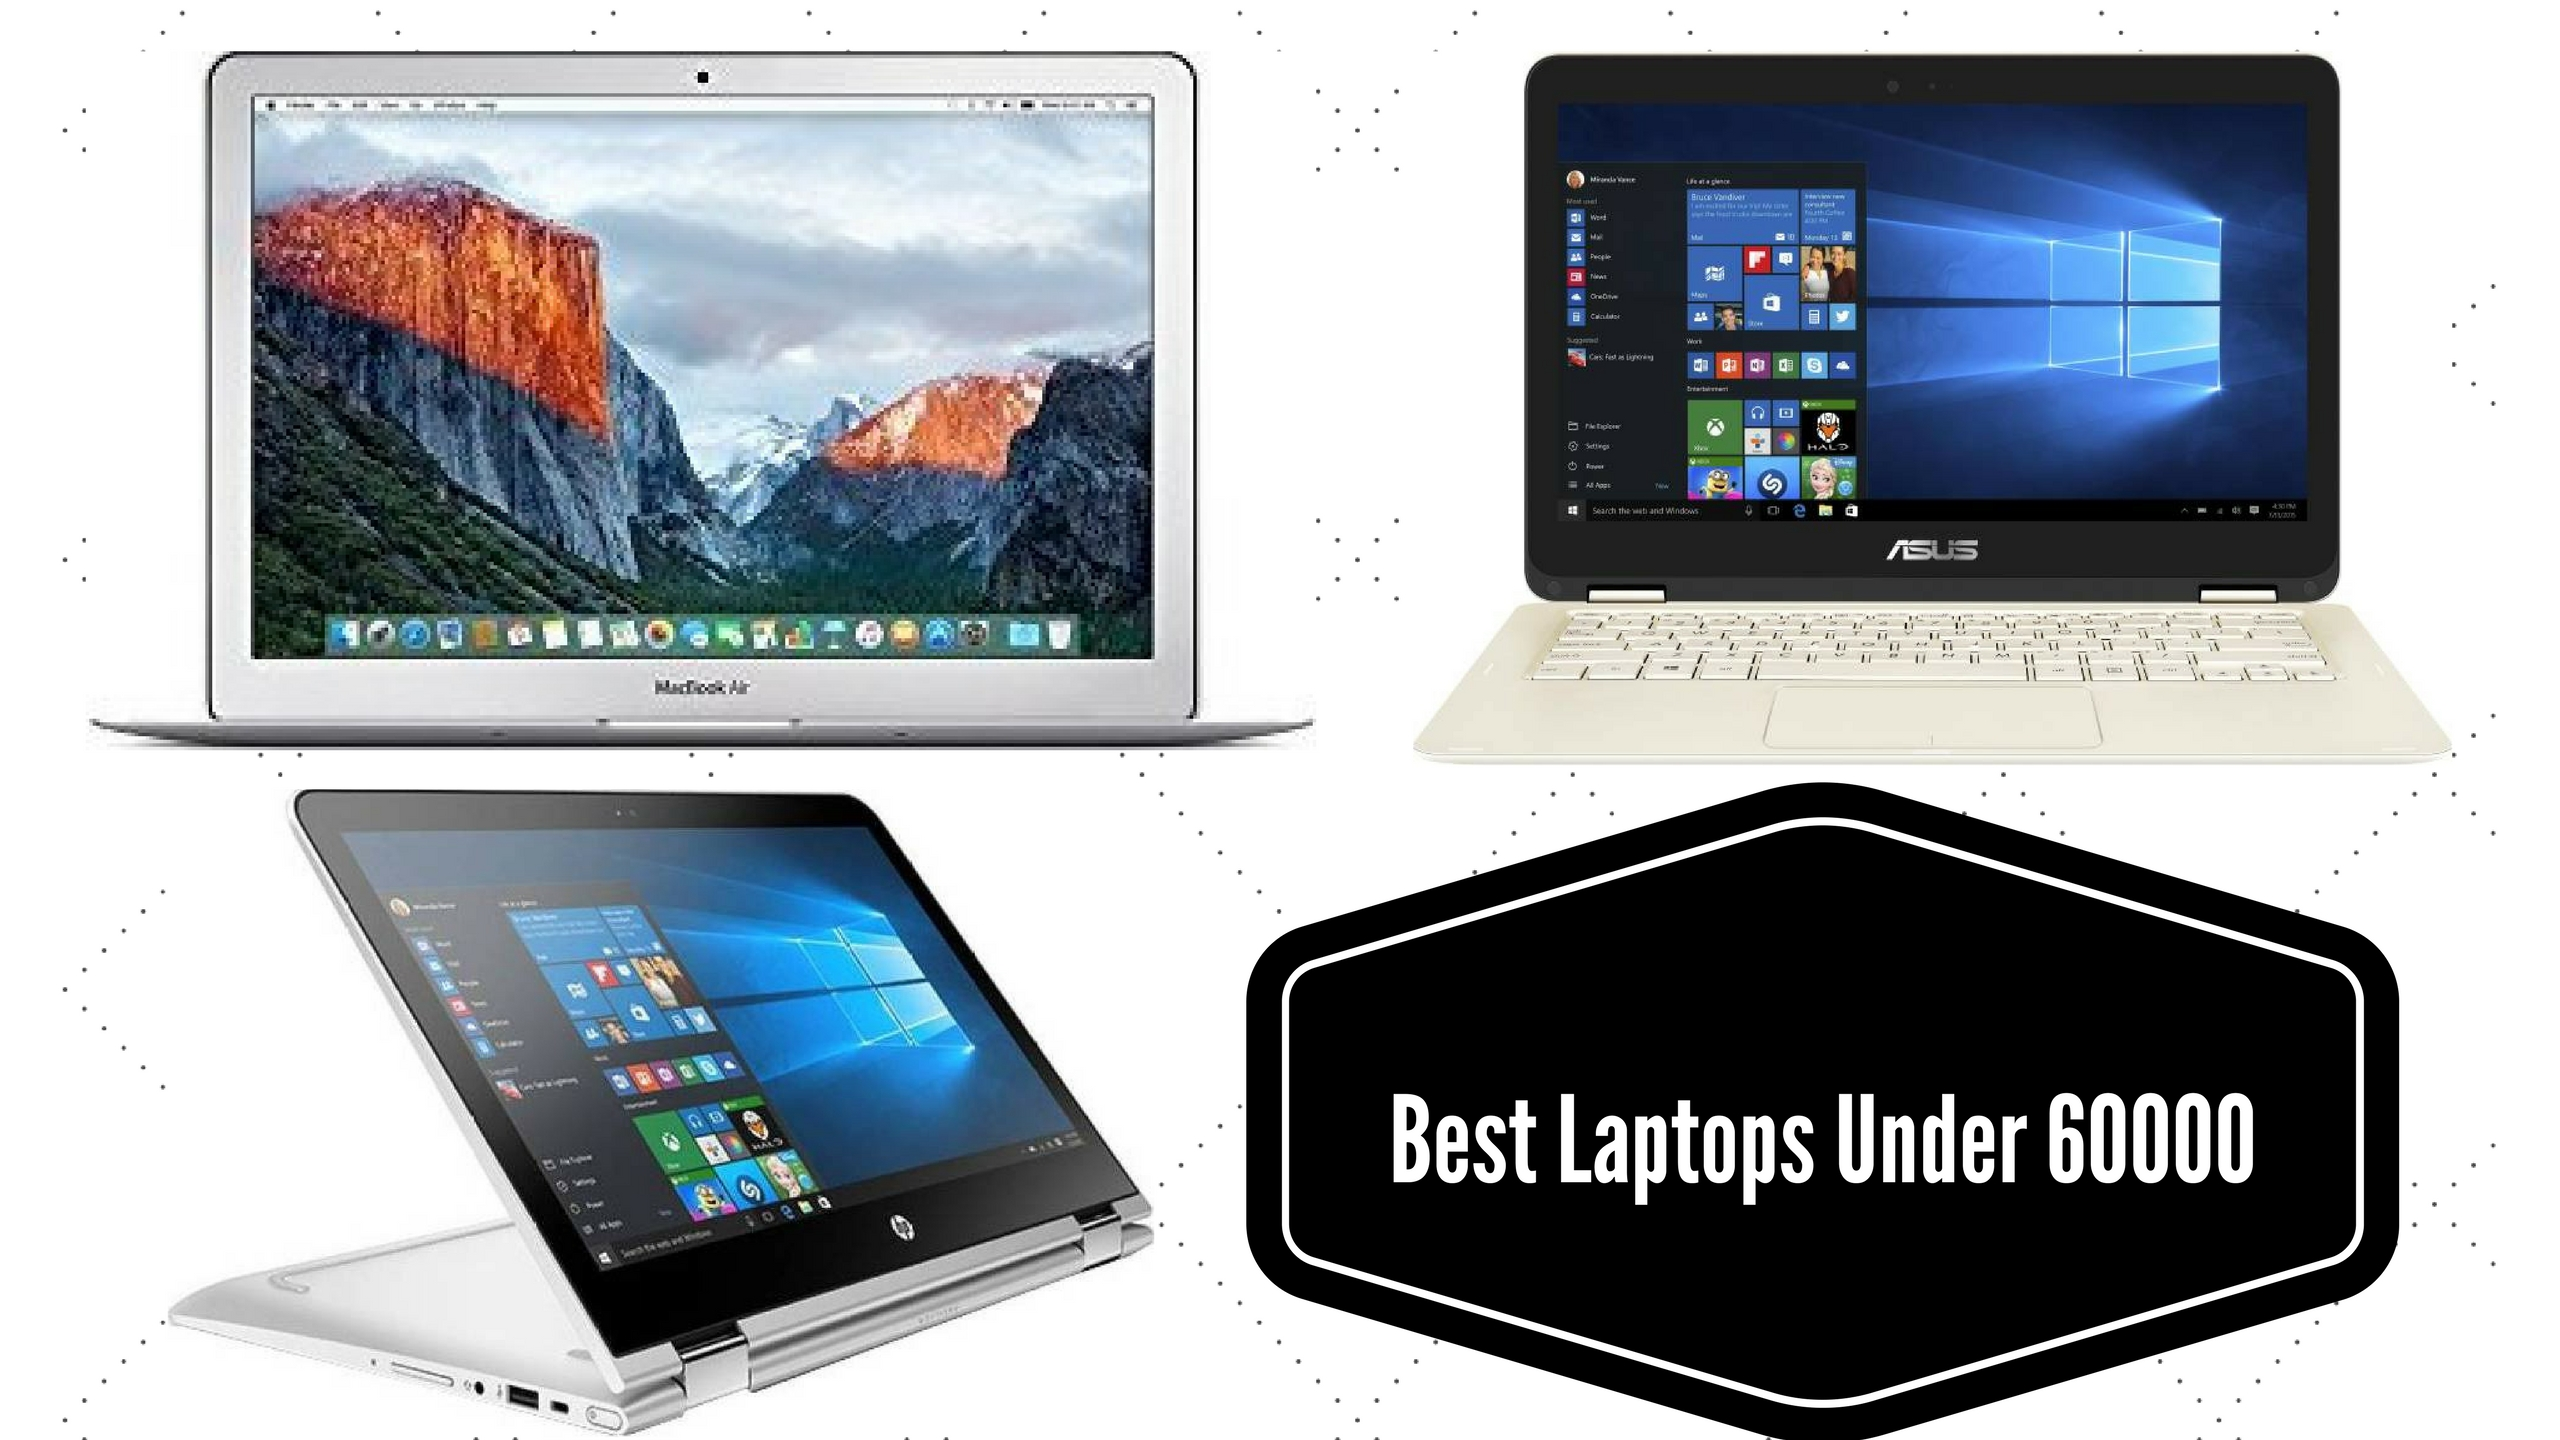 Top 10 Best Laptops Under 60000 in India | Reviews & Price List 2018